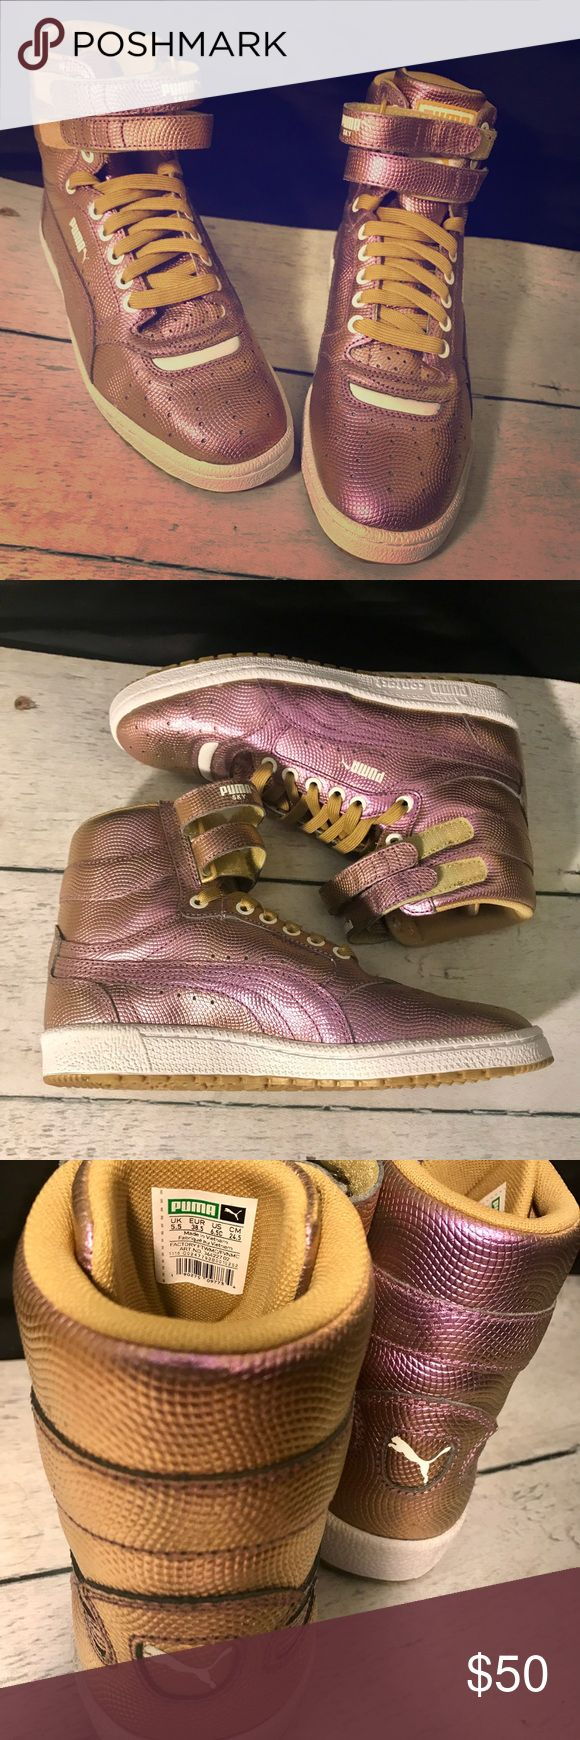 Puma high top sneaker Never worn! Fits Women's 8.5 Puma Hologram High Top Sky Sneaker! NEVER WORN! Jr/big kid size 6.5 also fits Women's size 8.5-9 Puma Shoes Sneakers